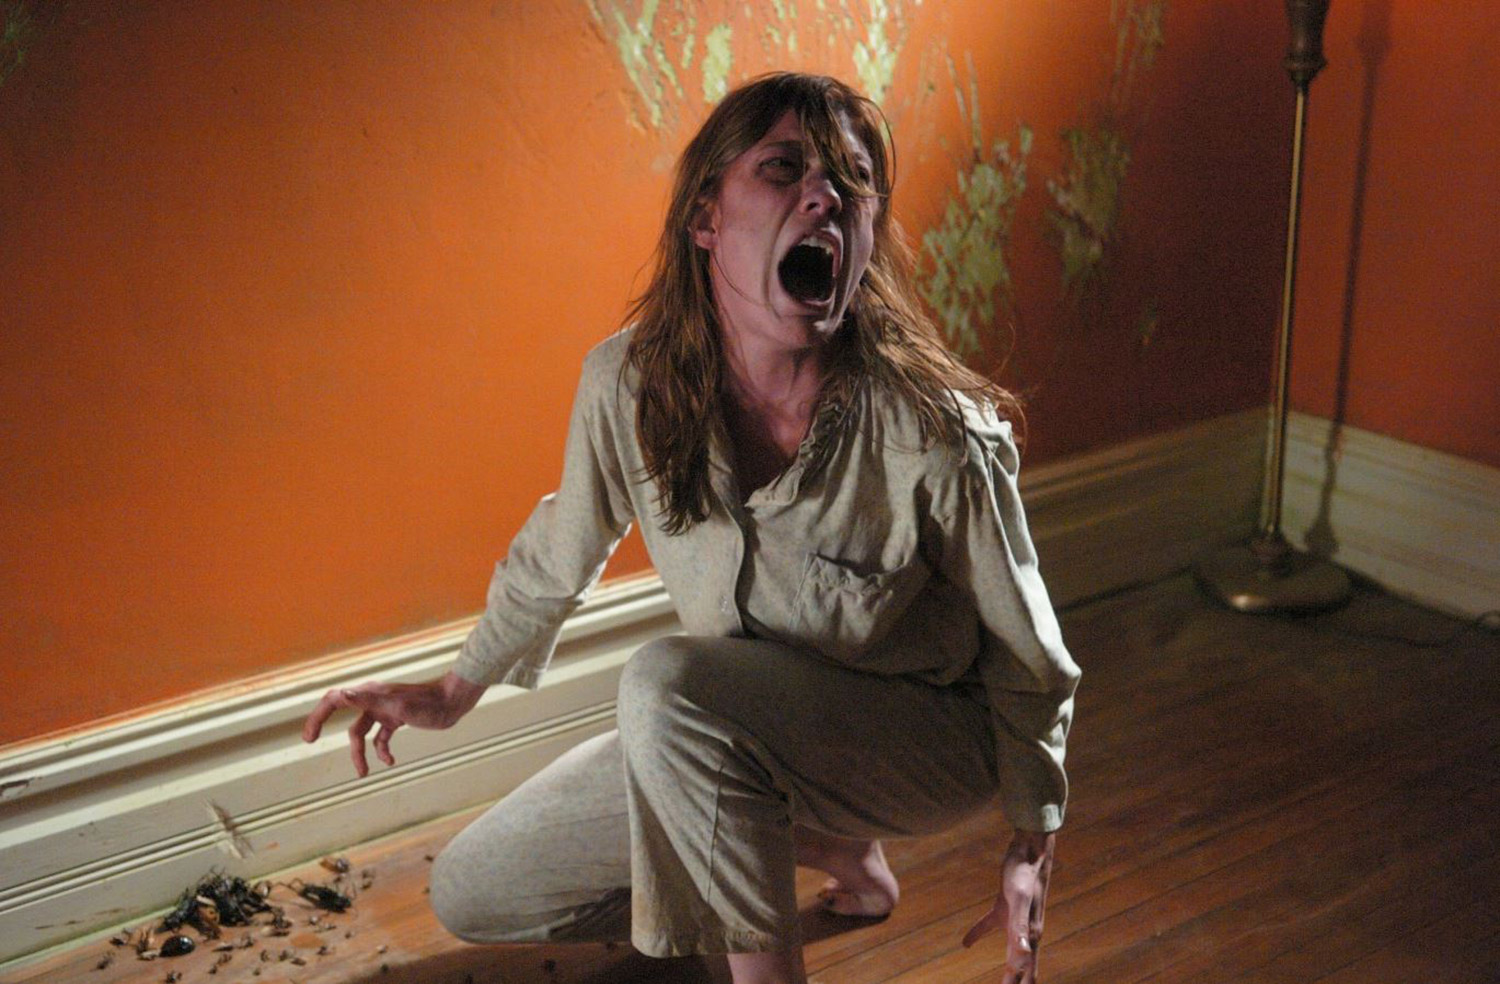 The Exorcism of Emily Rose - Emily possessed on floor